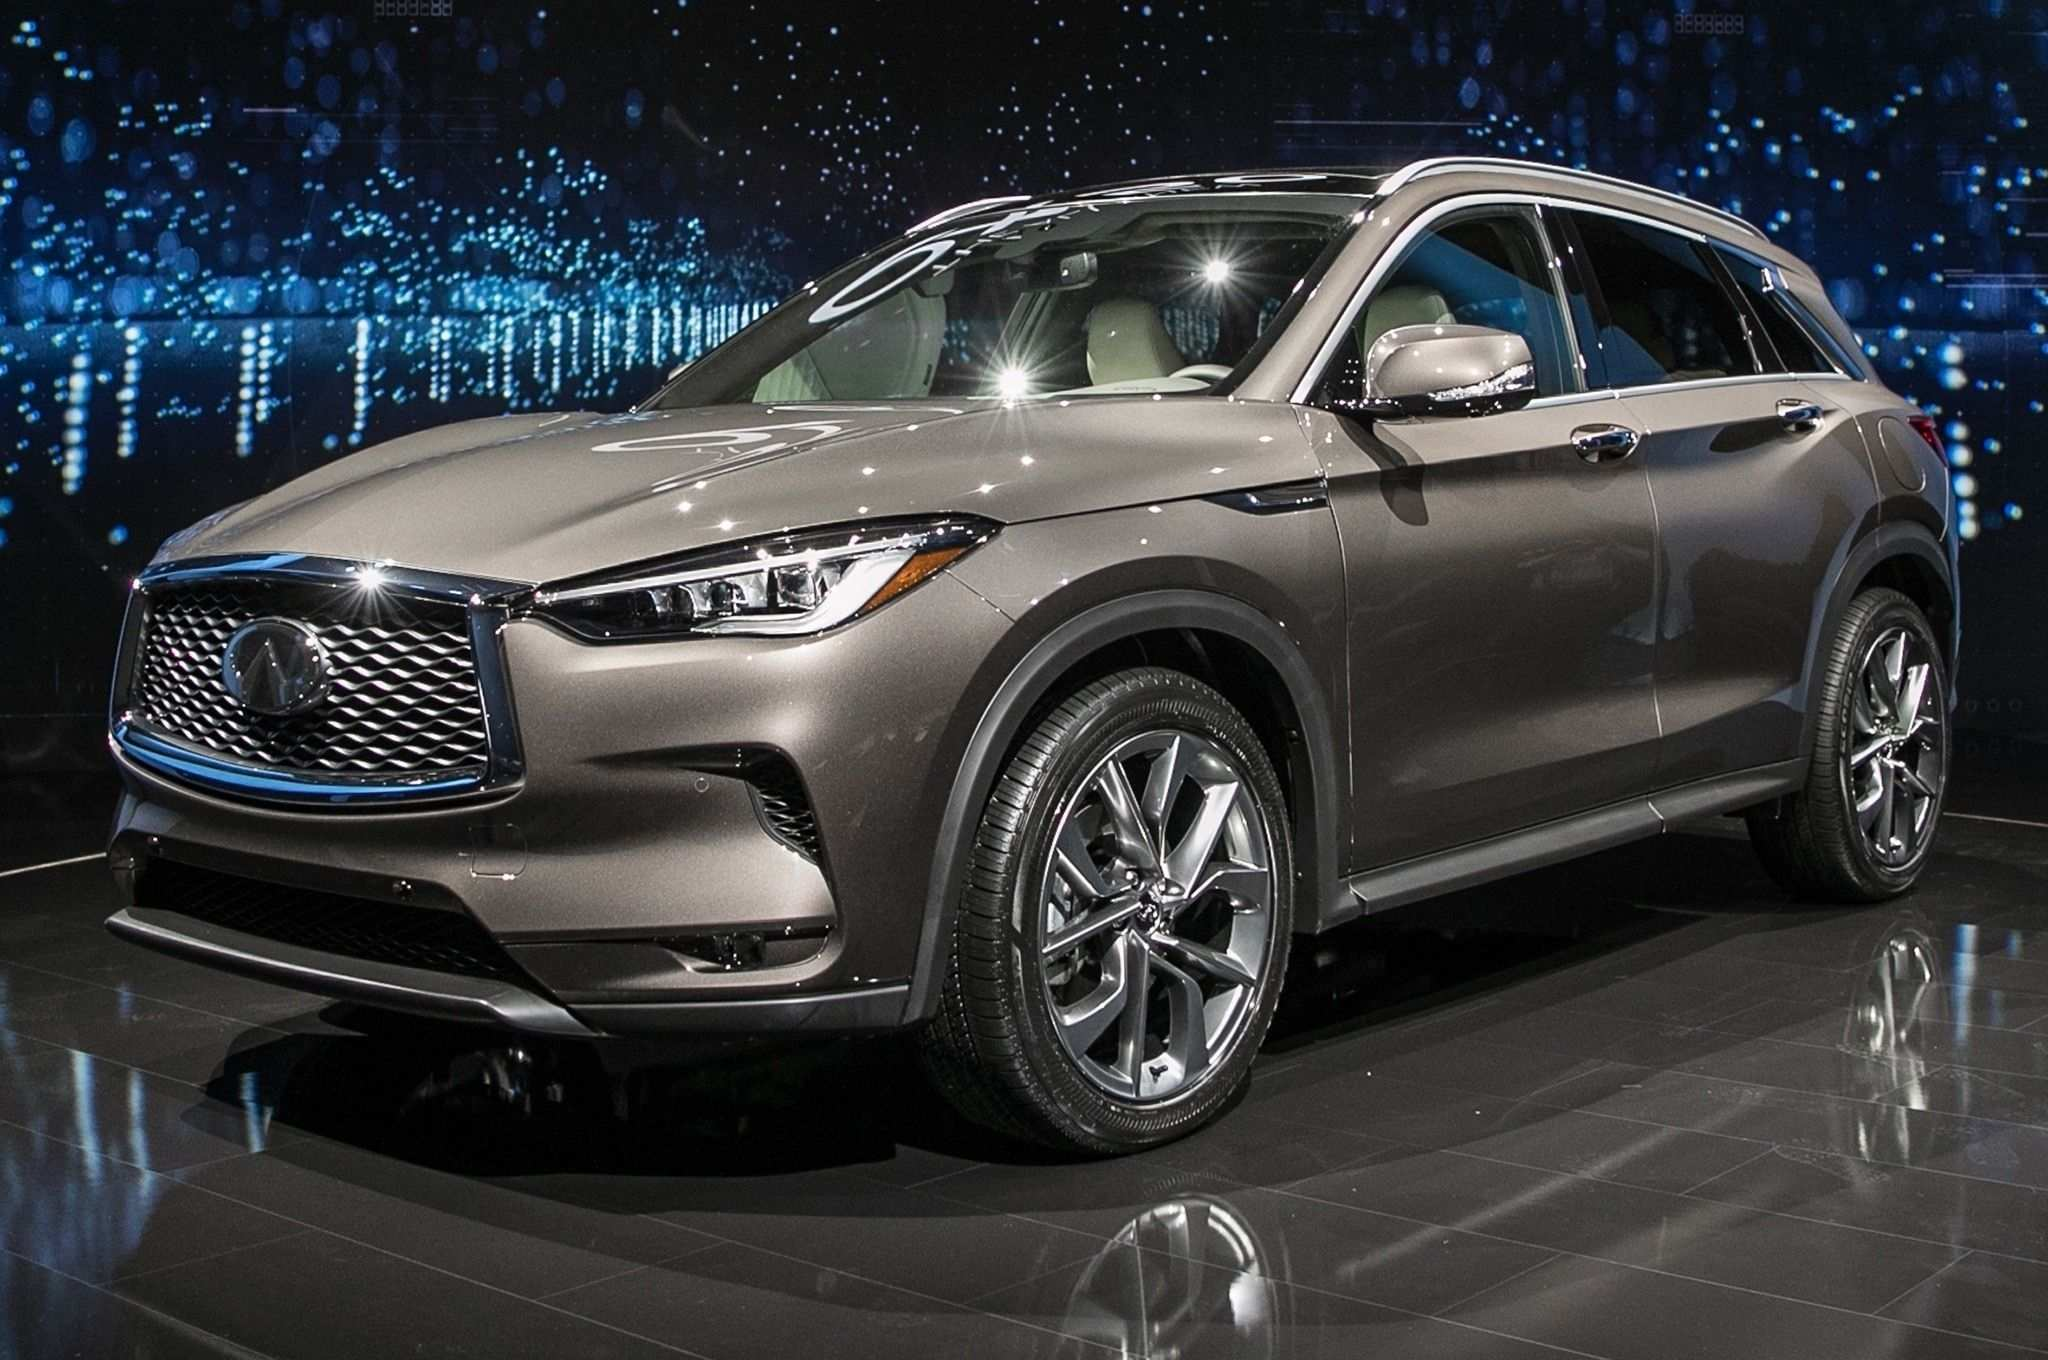 23 All New 2019 Infiniti M37 Specs with 2019 Infiniti M37